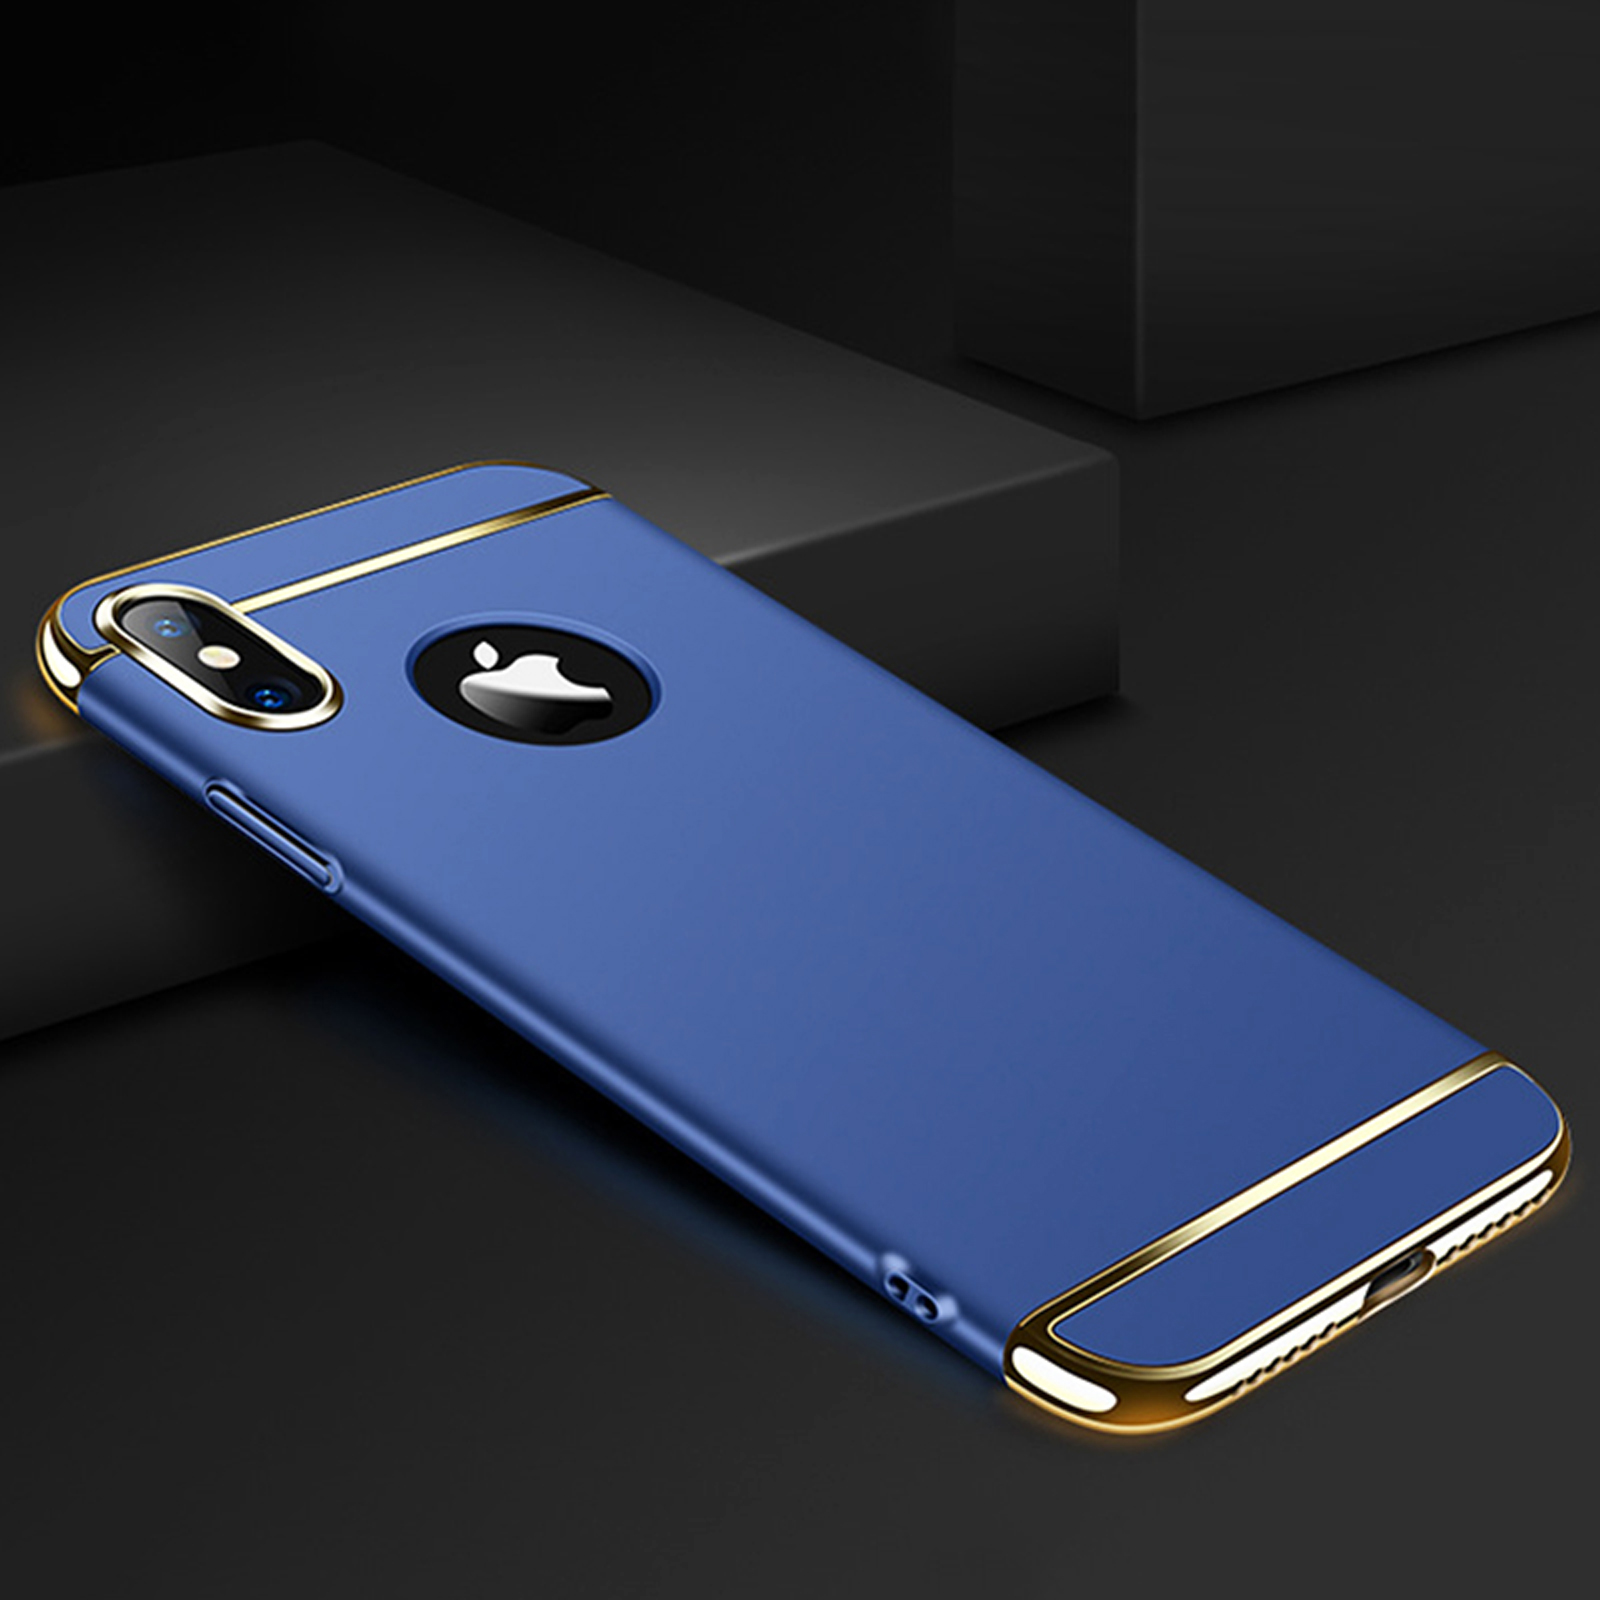 thumbnail 70 - Luxury Matte Case Tempered Glass Cover For Apple iPhone X XS XR Max 10 8 7 6s 6